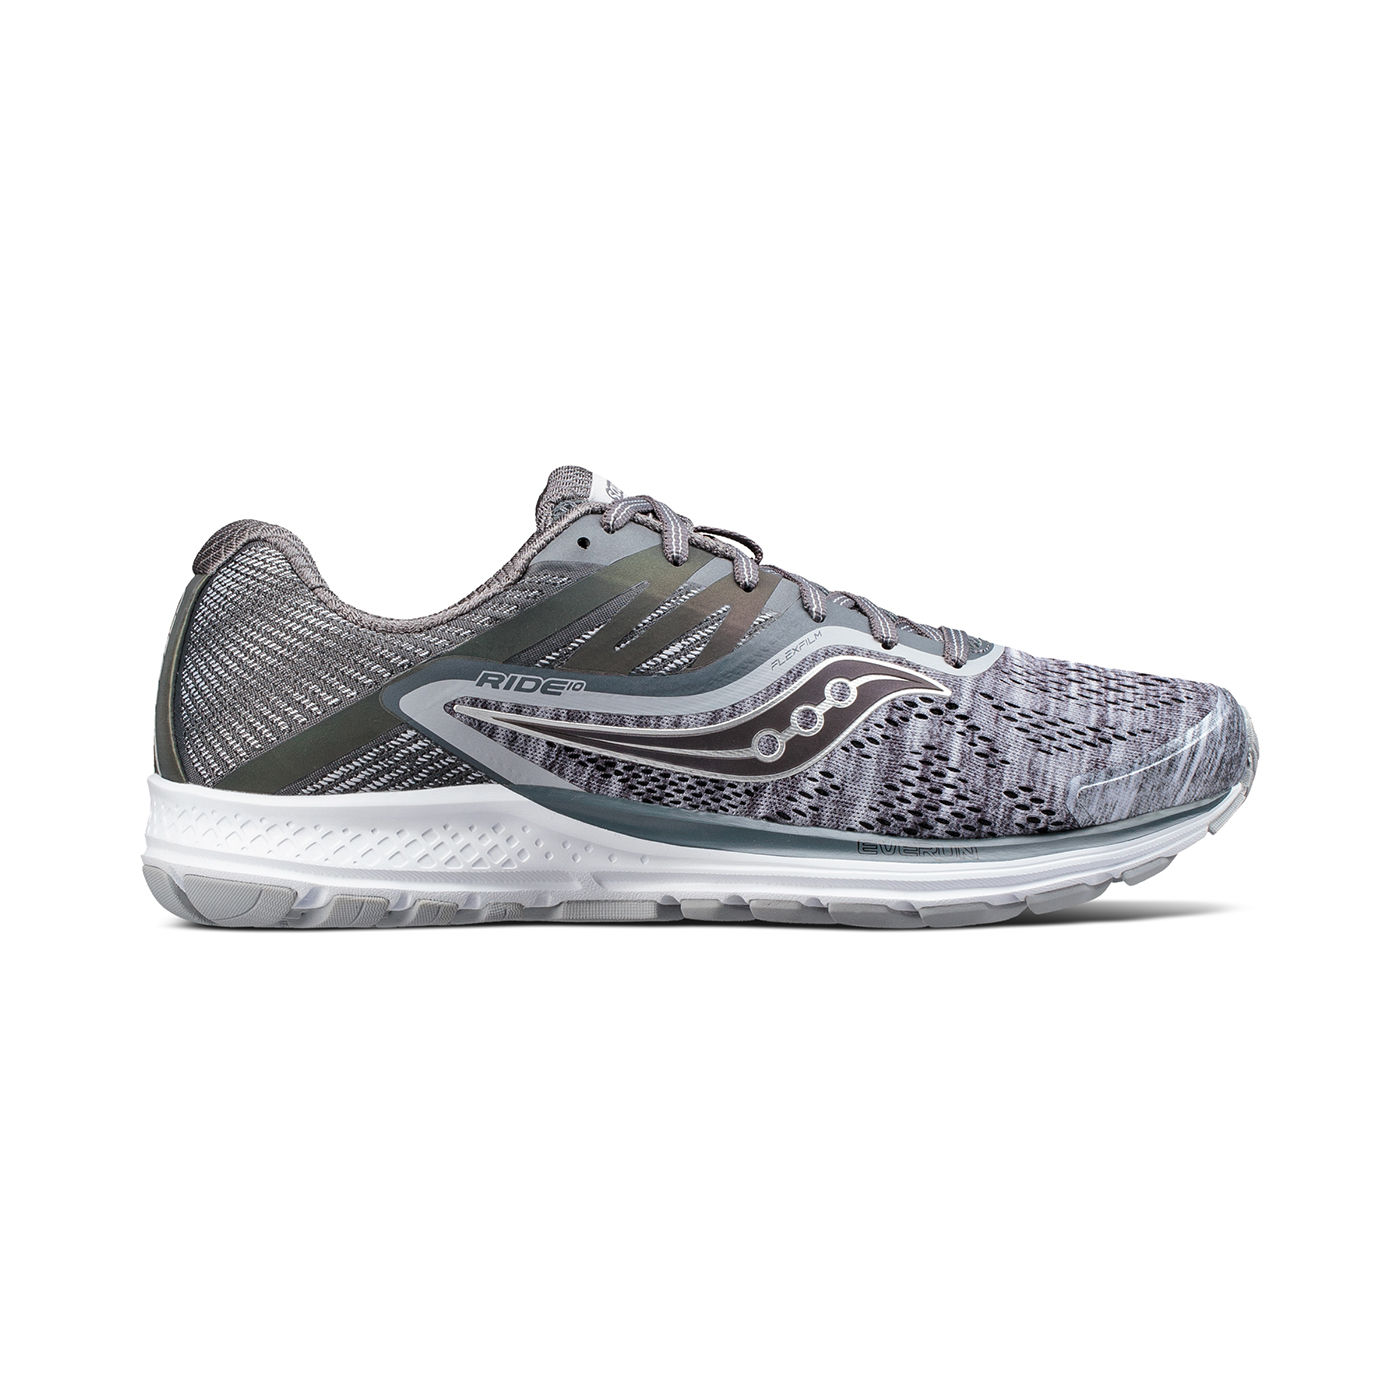 Saucony Lady Ride 10 RunLife in Heathered Chroma